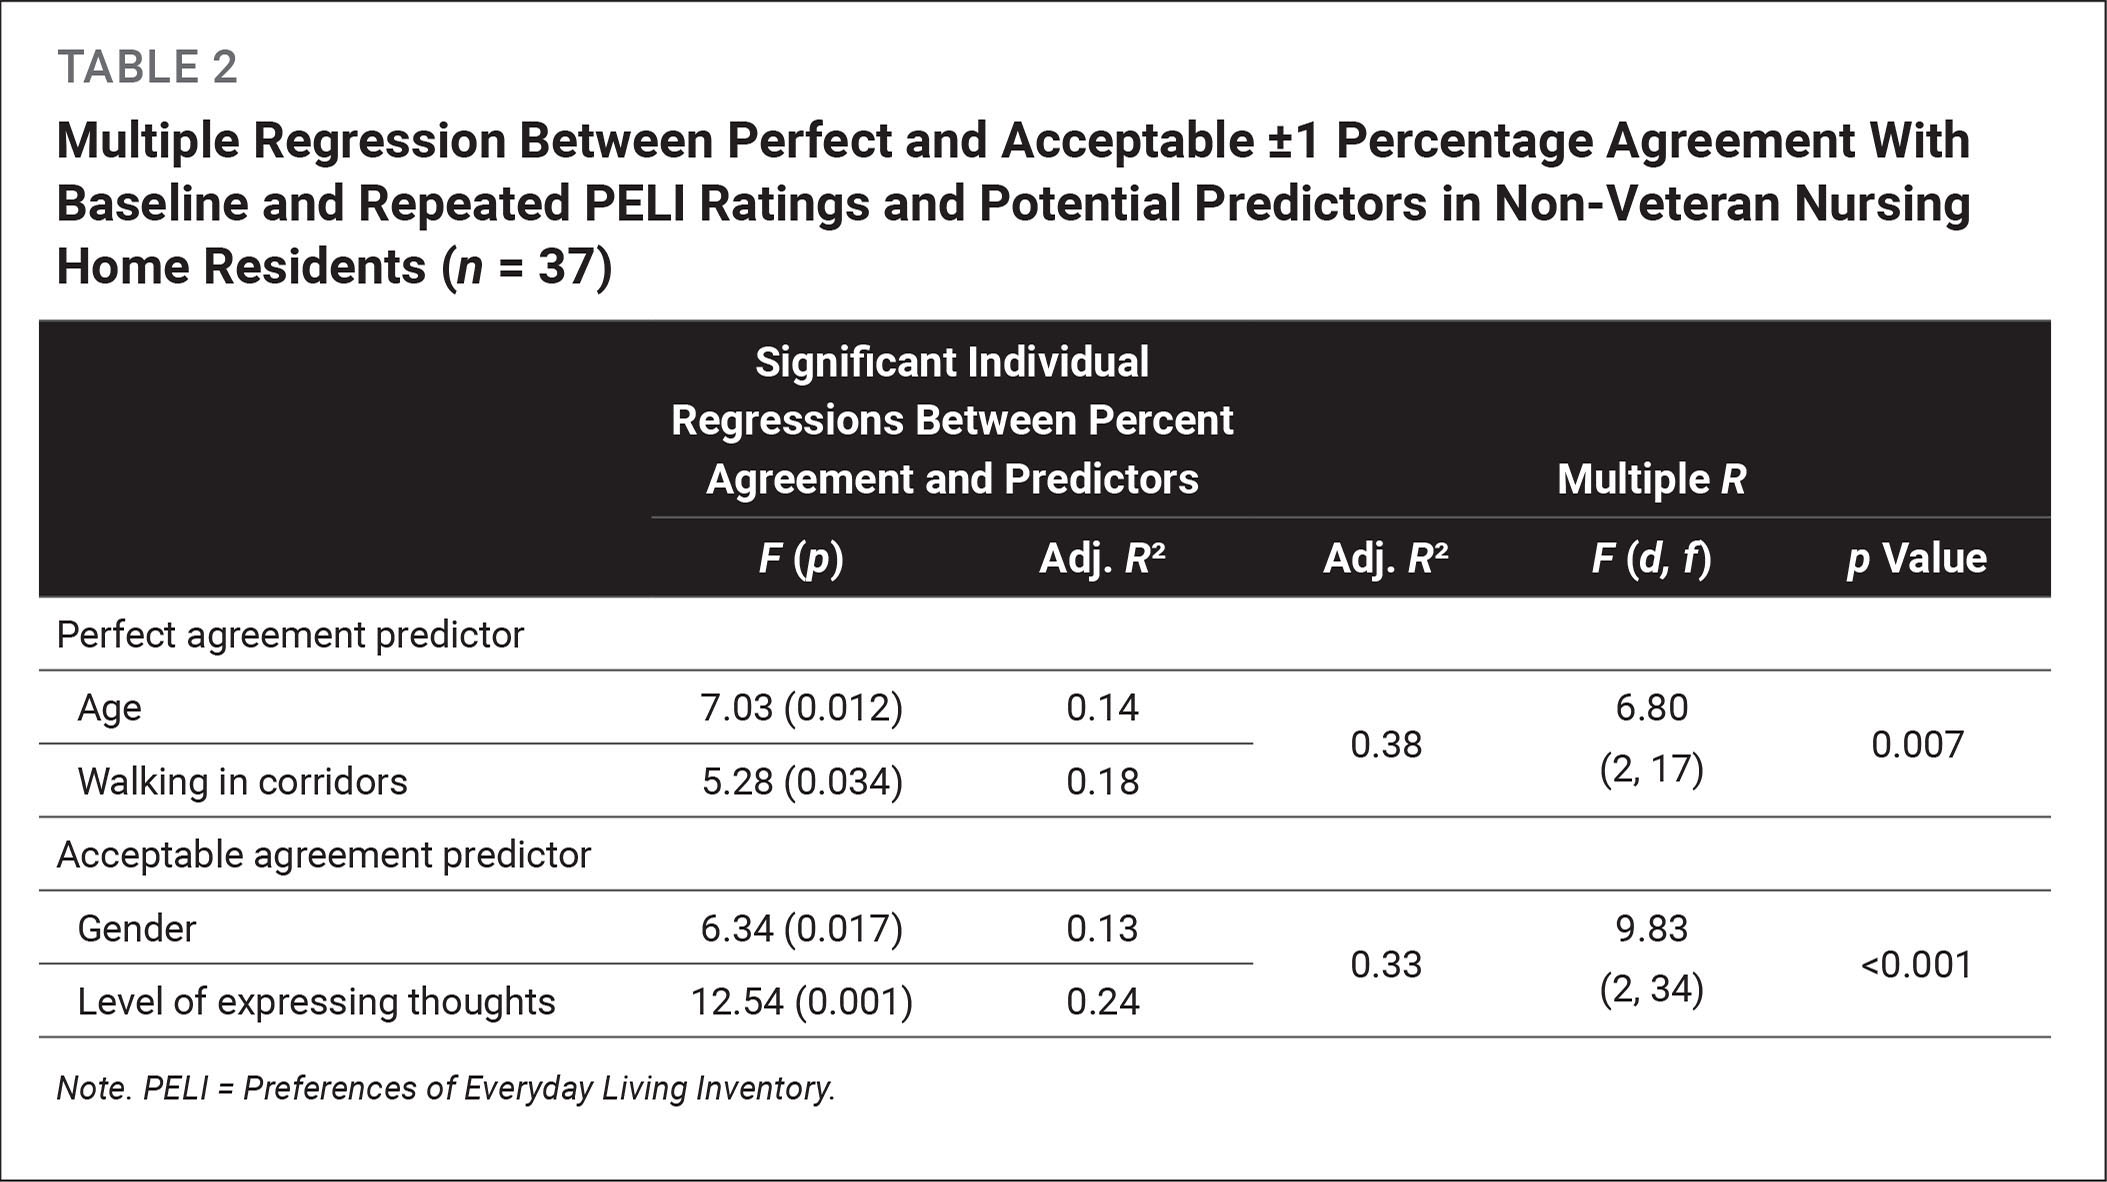 Multiple Regression Between Perfect and Acceptable ±1 Percentage Agreement With Baseline and Repeated PELI Ratings and Potential Predictors in Non-Veteran Nursing Home Residents (n = 37)